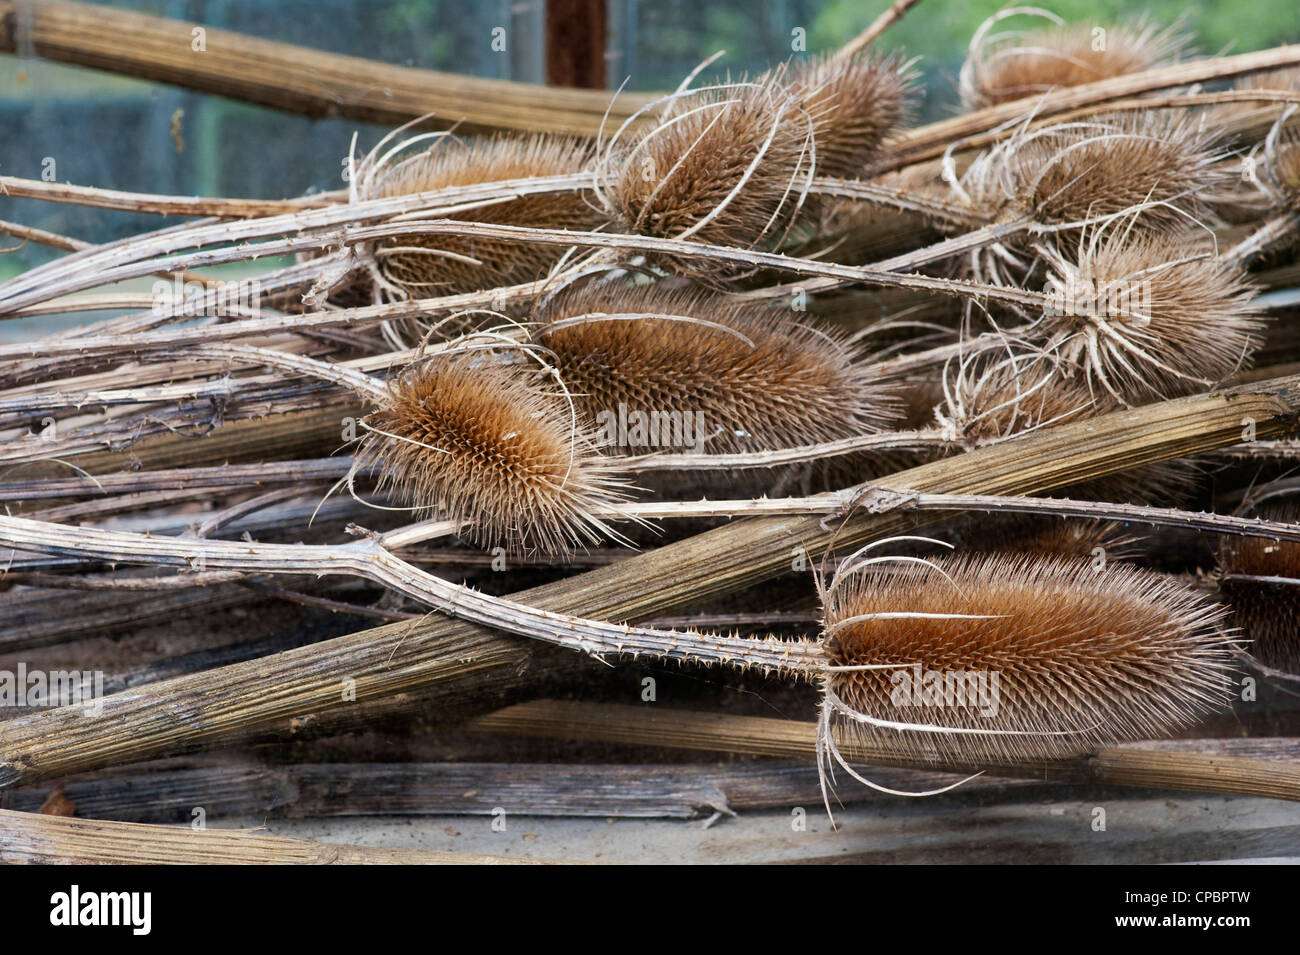 Dipsacus fullonum. Dried teasel plants in a greenhouse - Stock Image